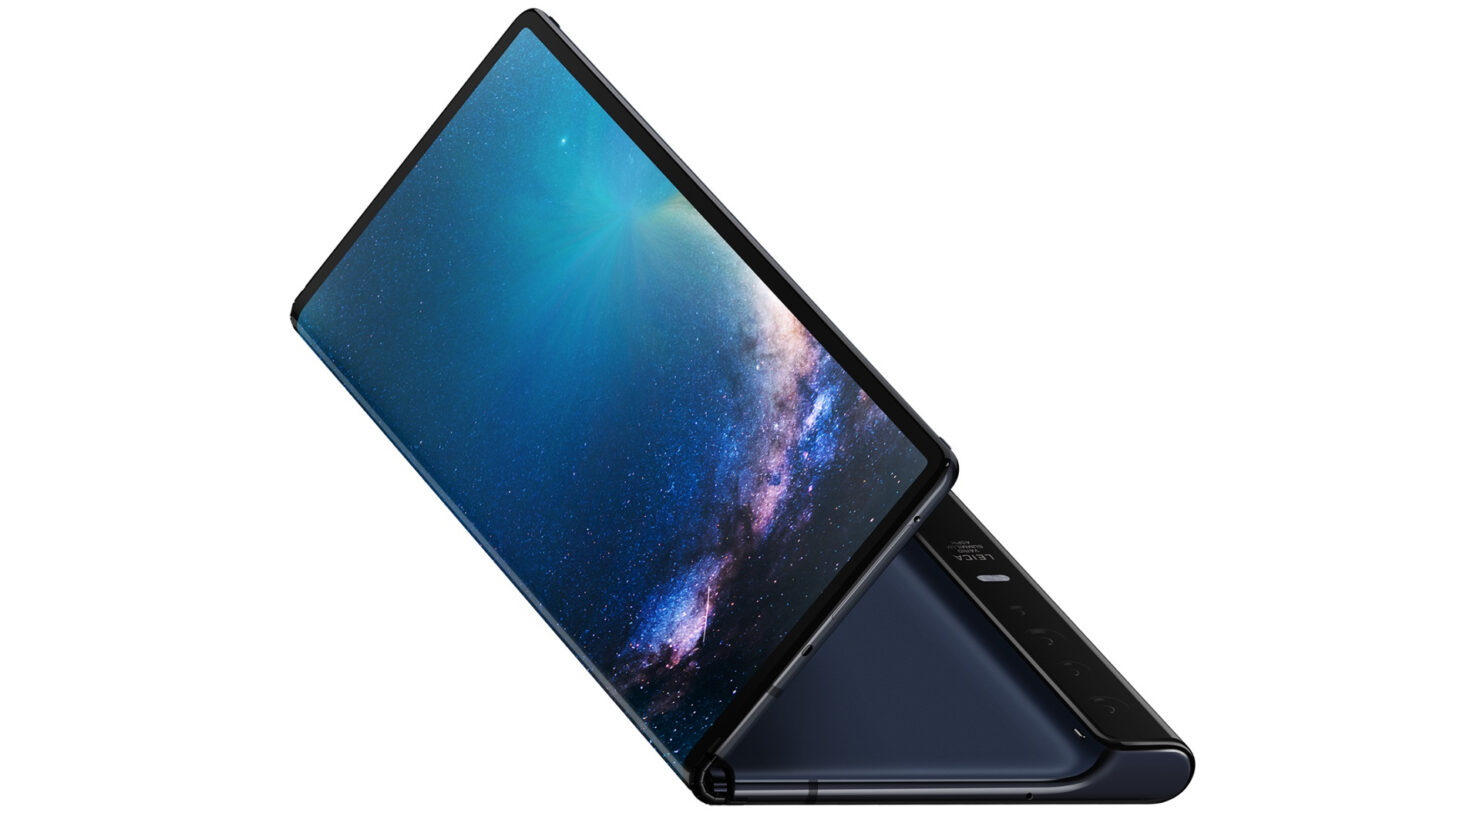 Mate X Screen Replacement Cost Is Equal to an iPhone 11 Pro Purchase